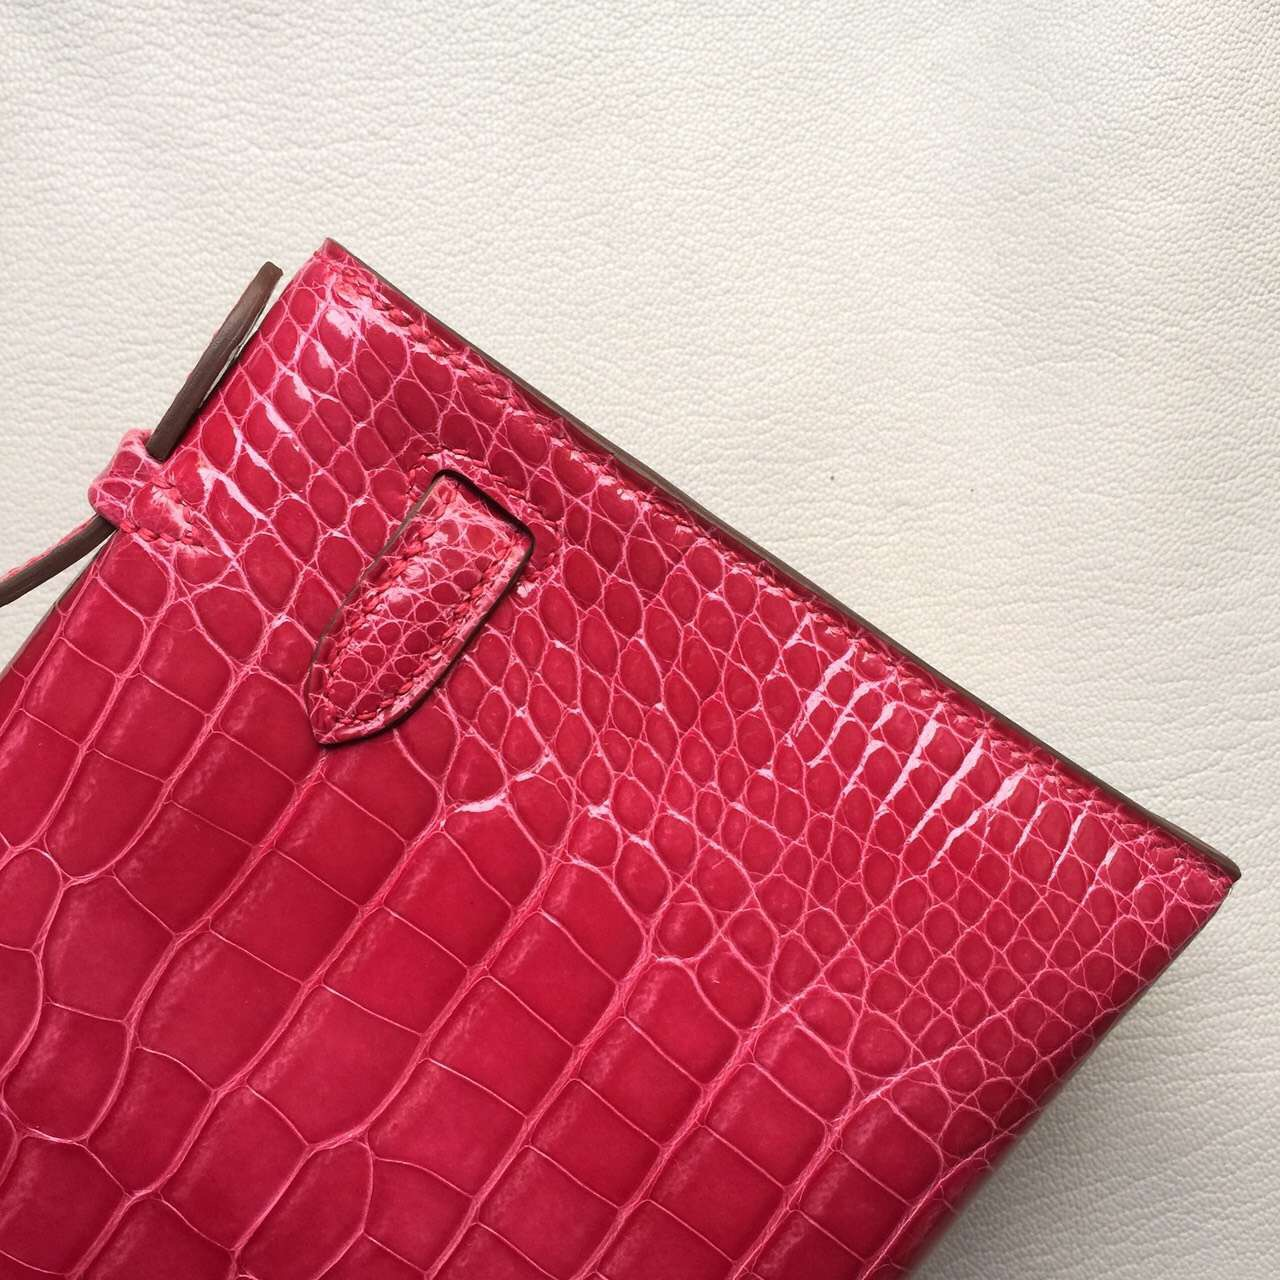 Hermes 5J Rose Scheherazade Crocodile Shiny Leather Mini Kelly Bag 22CM